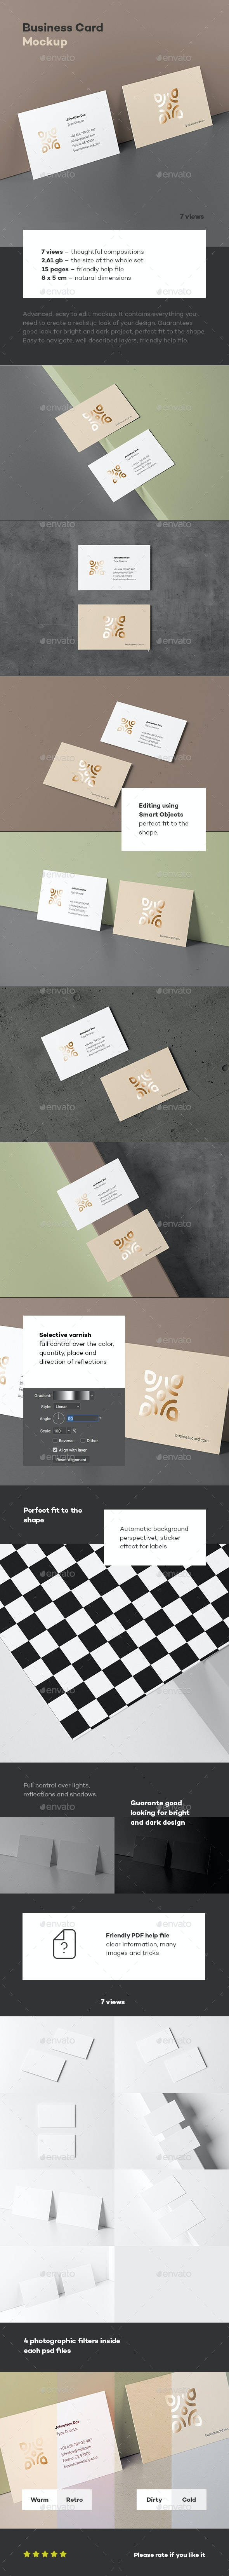 Business Card Mock-up 80x50 - Business Cards Print